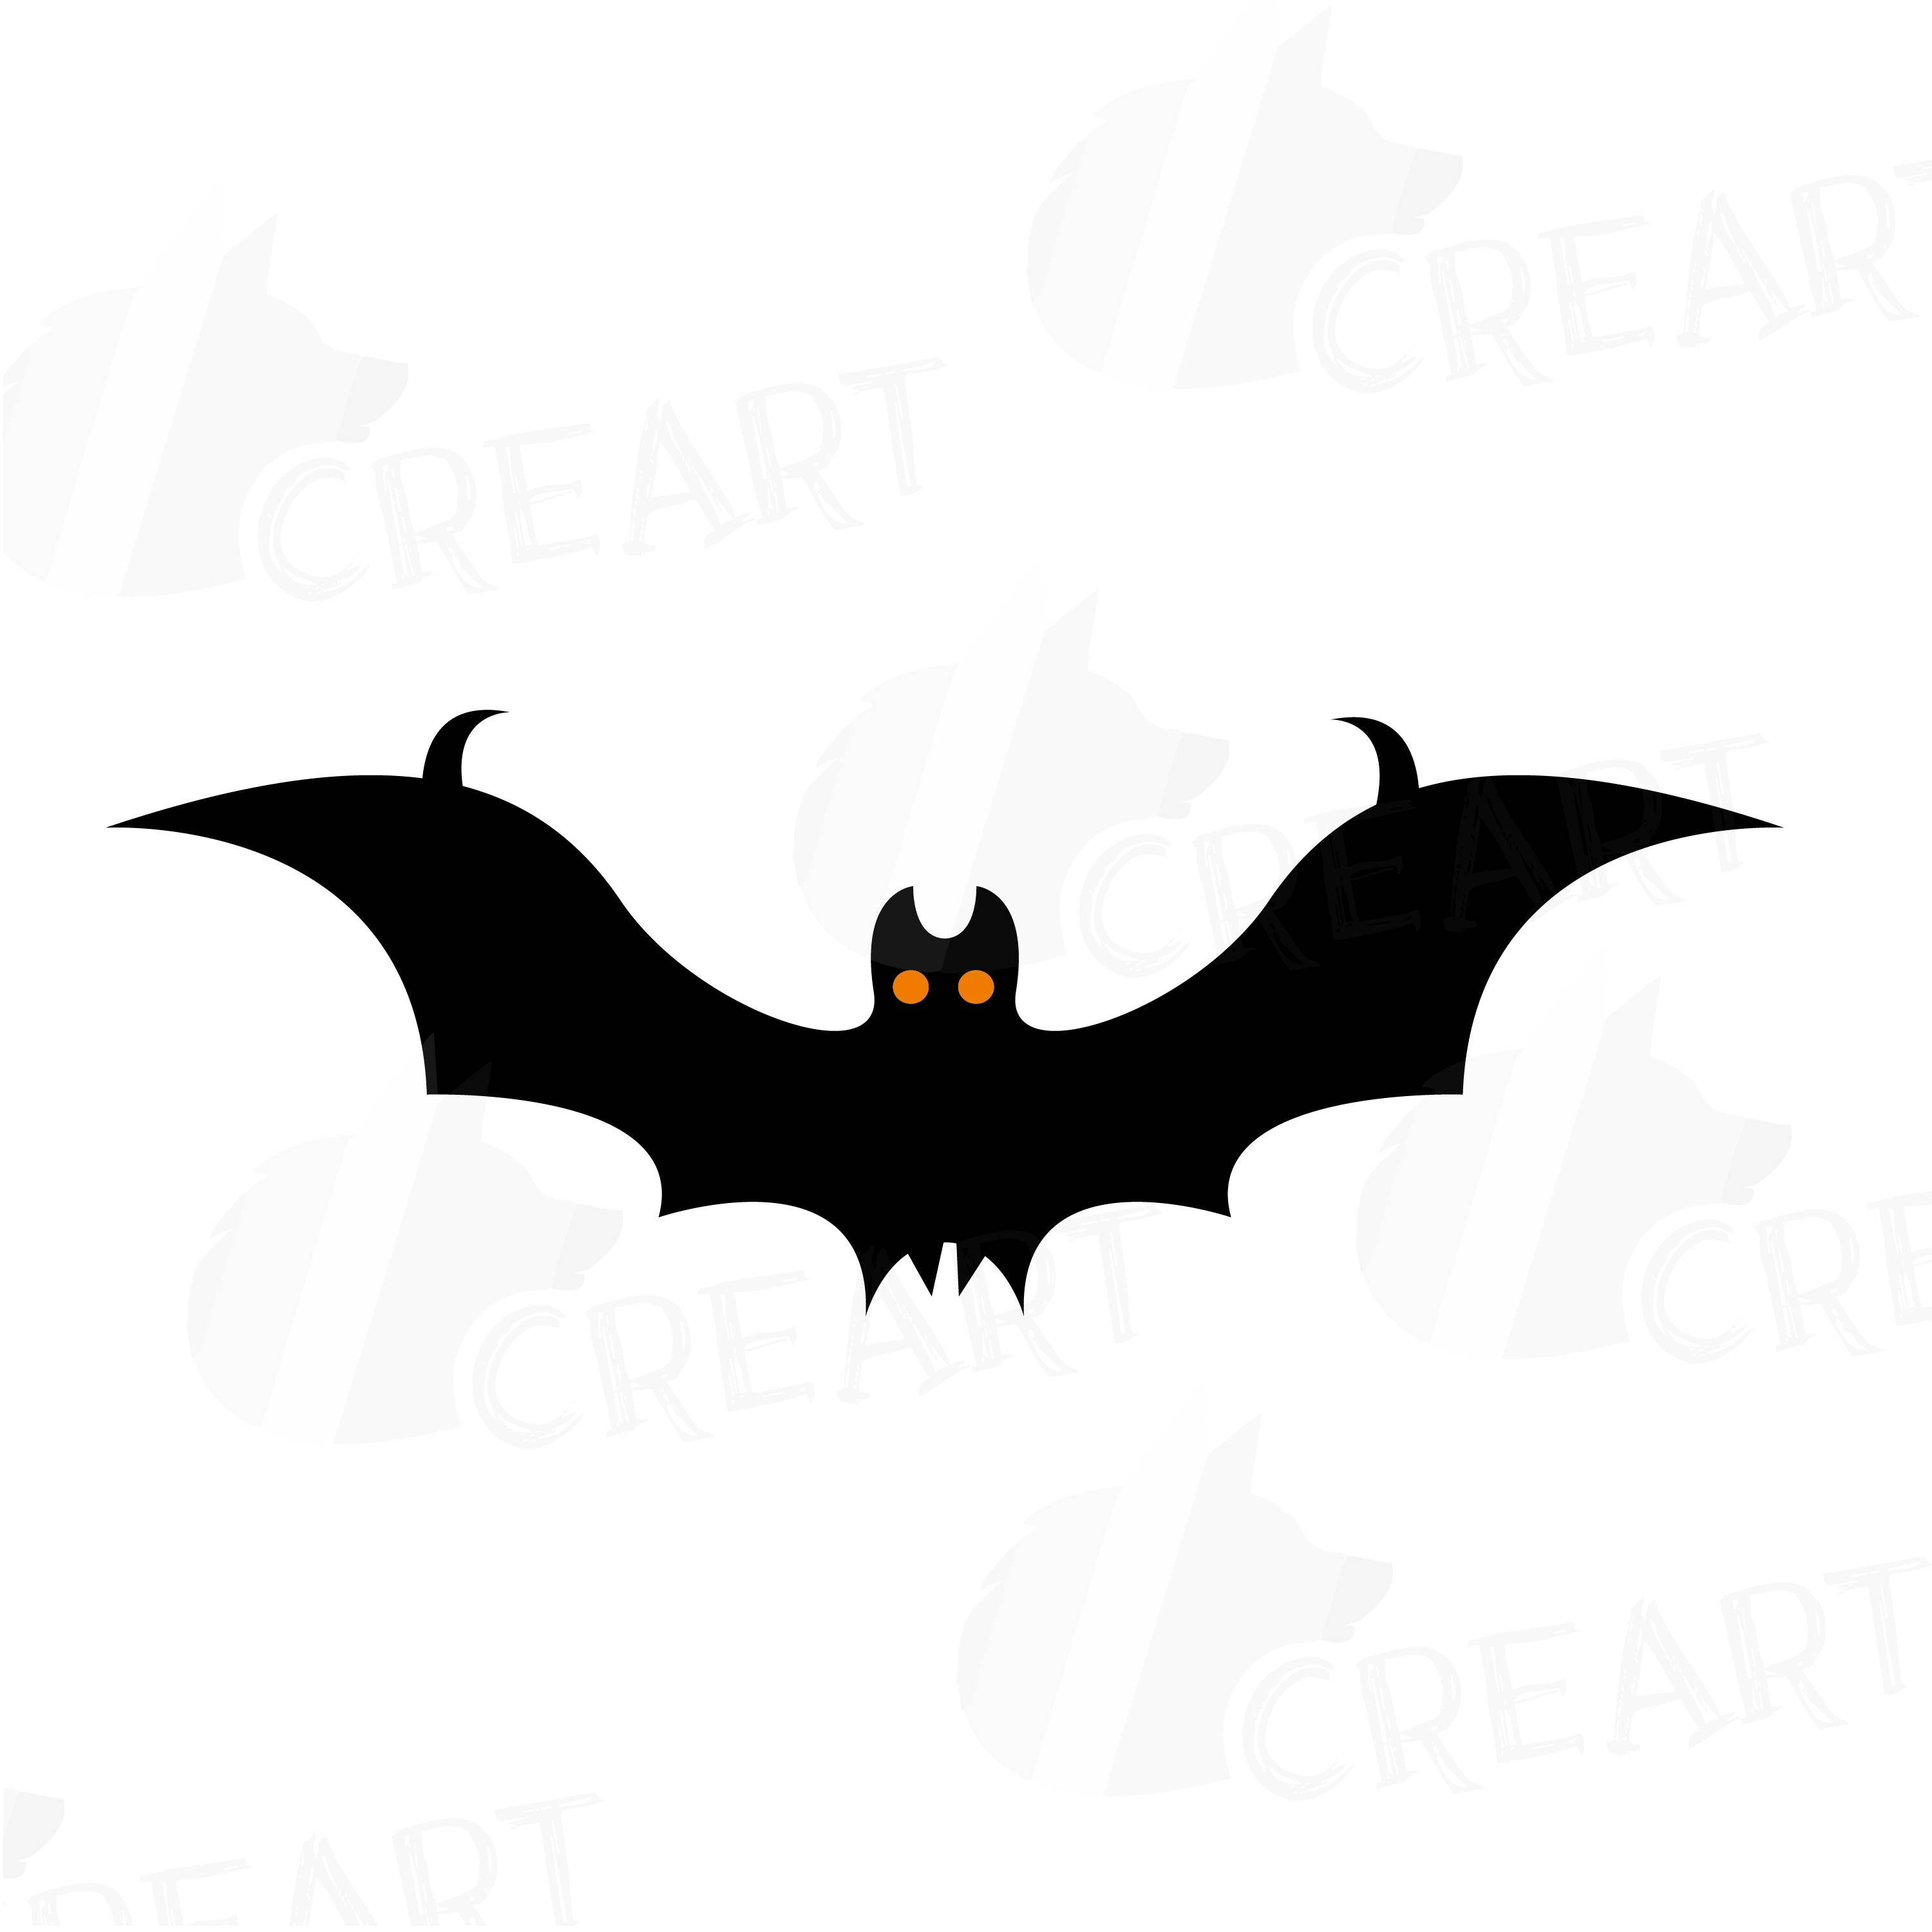 3000x3000 Halloween Bats Silhouettes Clipart Vectors For Commercial